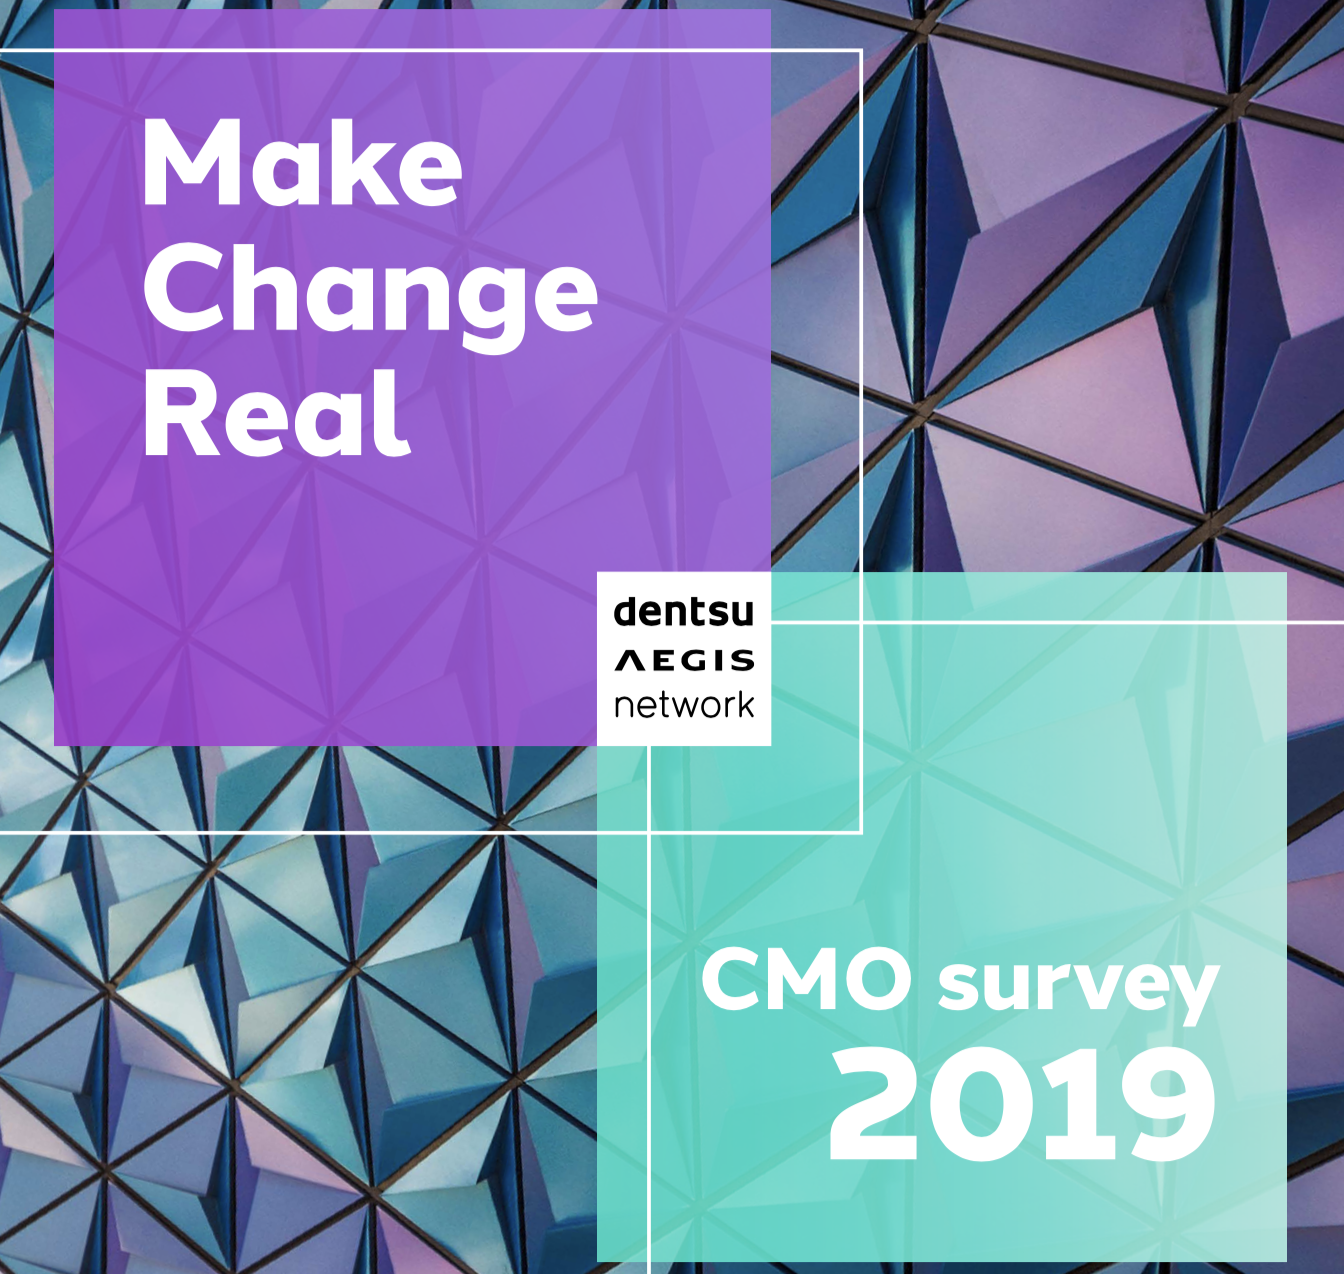 Make Change Real. Dentsu Aegis Network CMO survey 2019